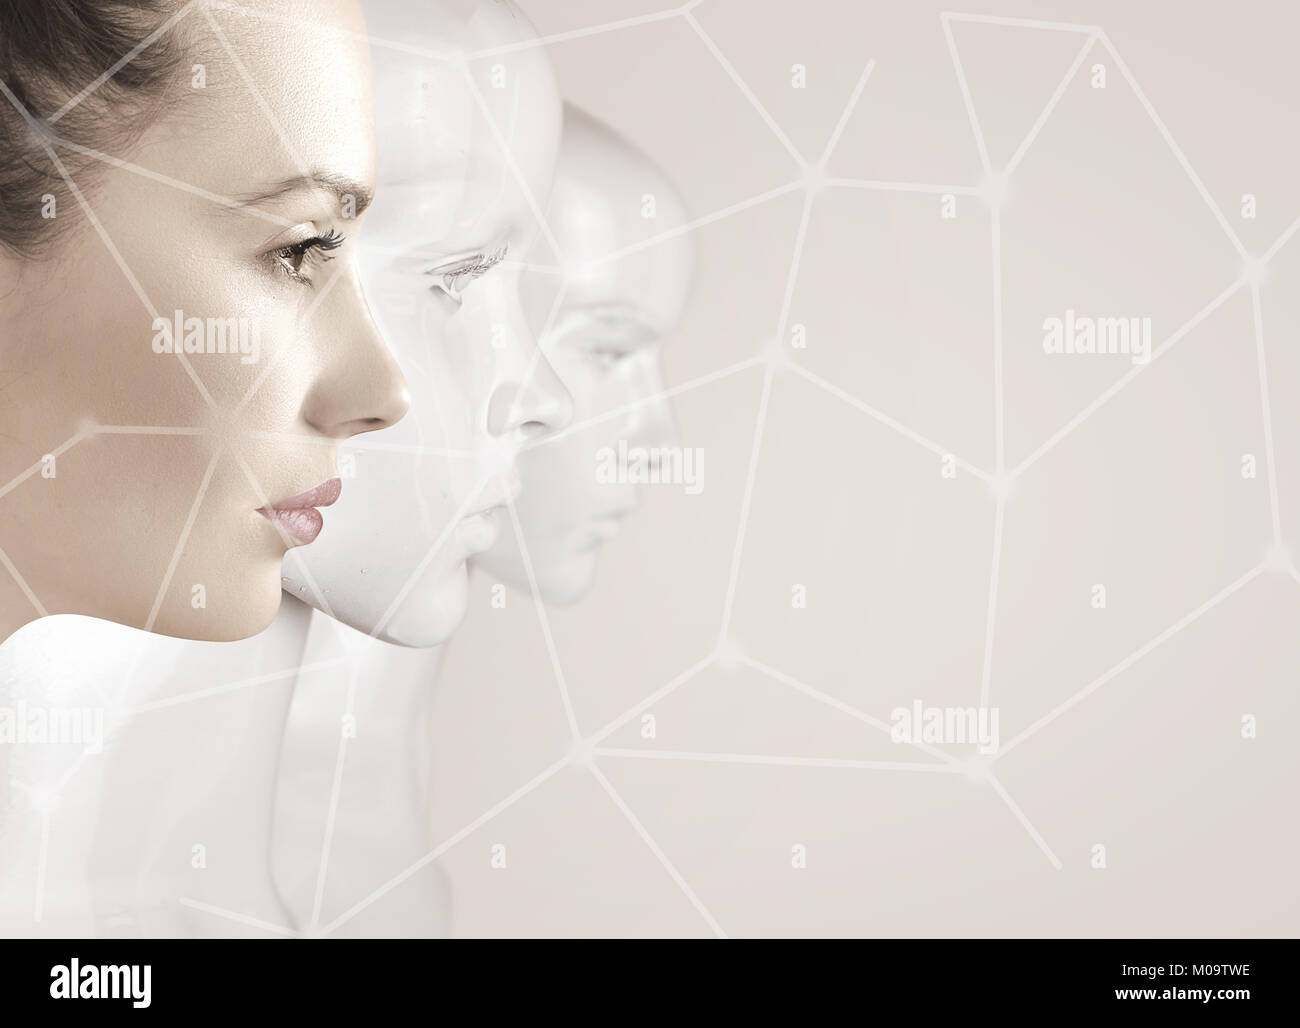 Woman and robots - artificial intelligence concept - Stock Image